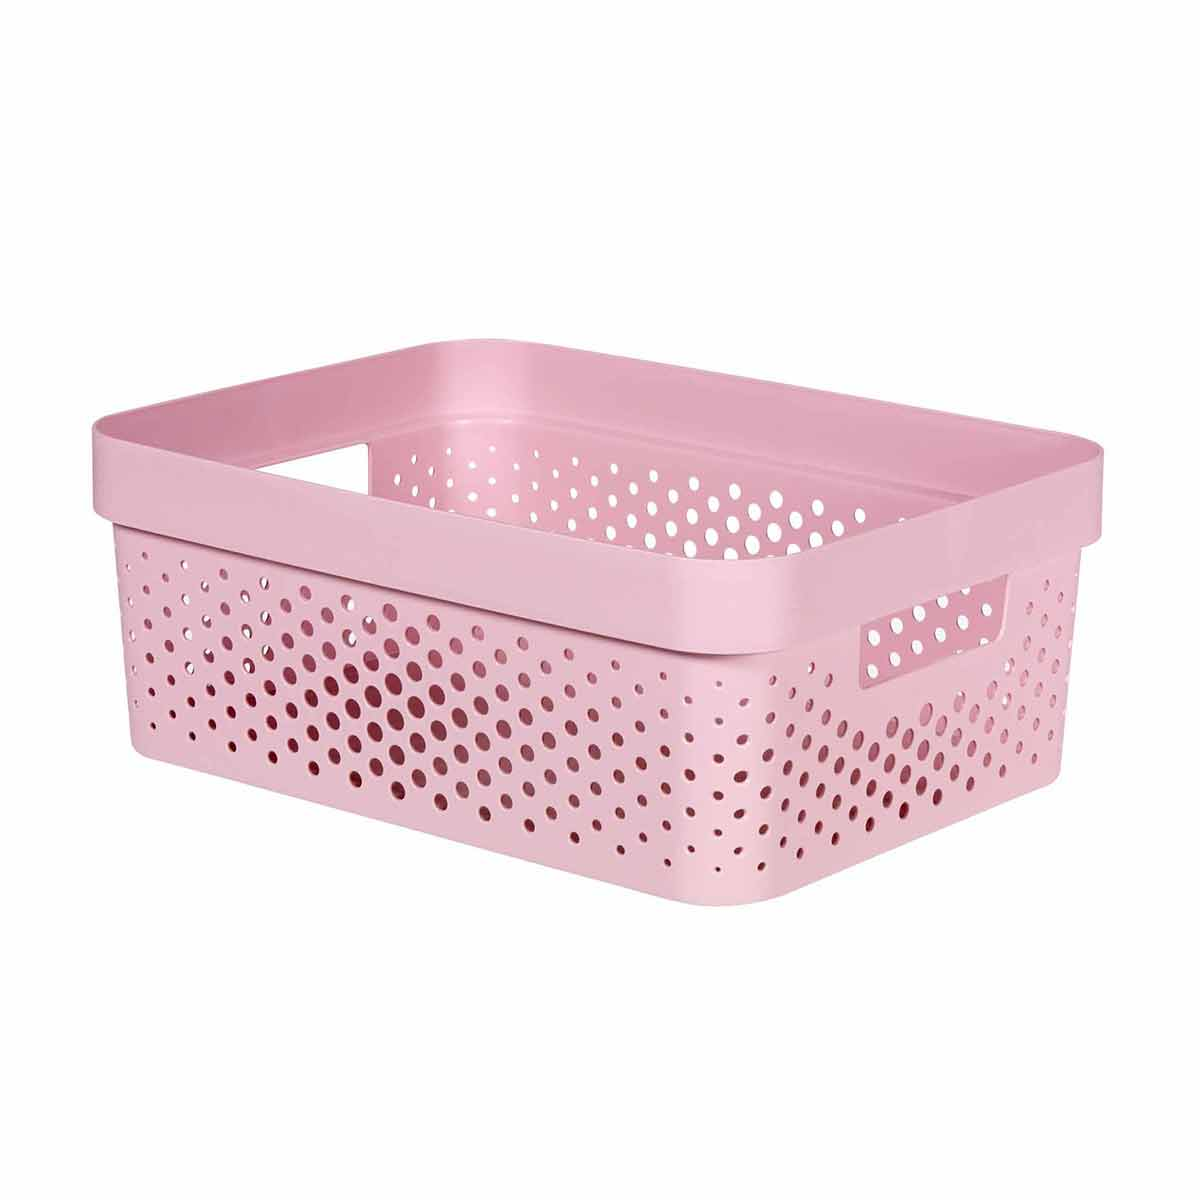 Curver Infinity Recycled Storage Basket 11 Litre, Pink